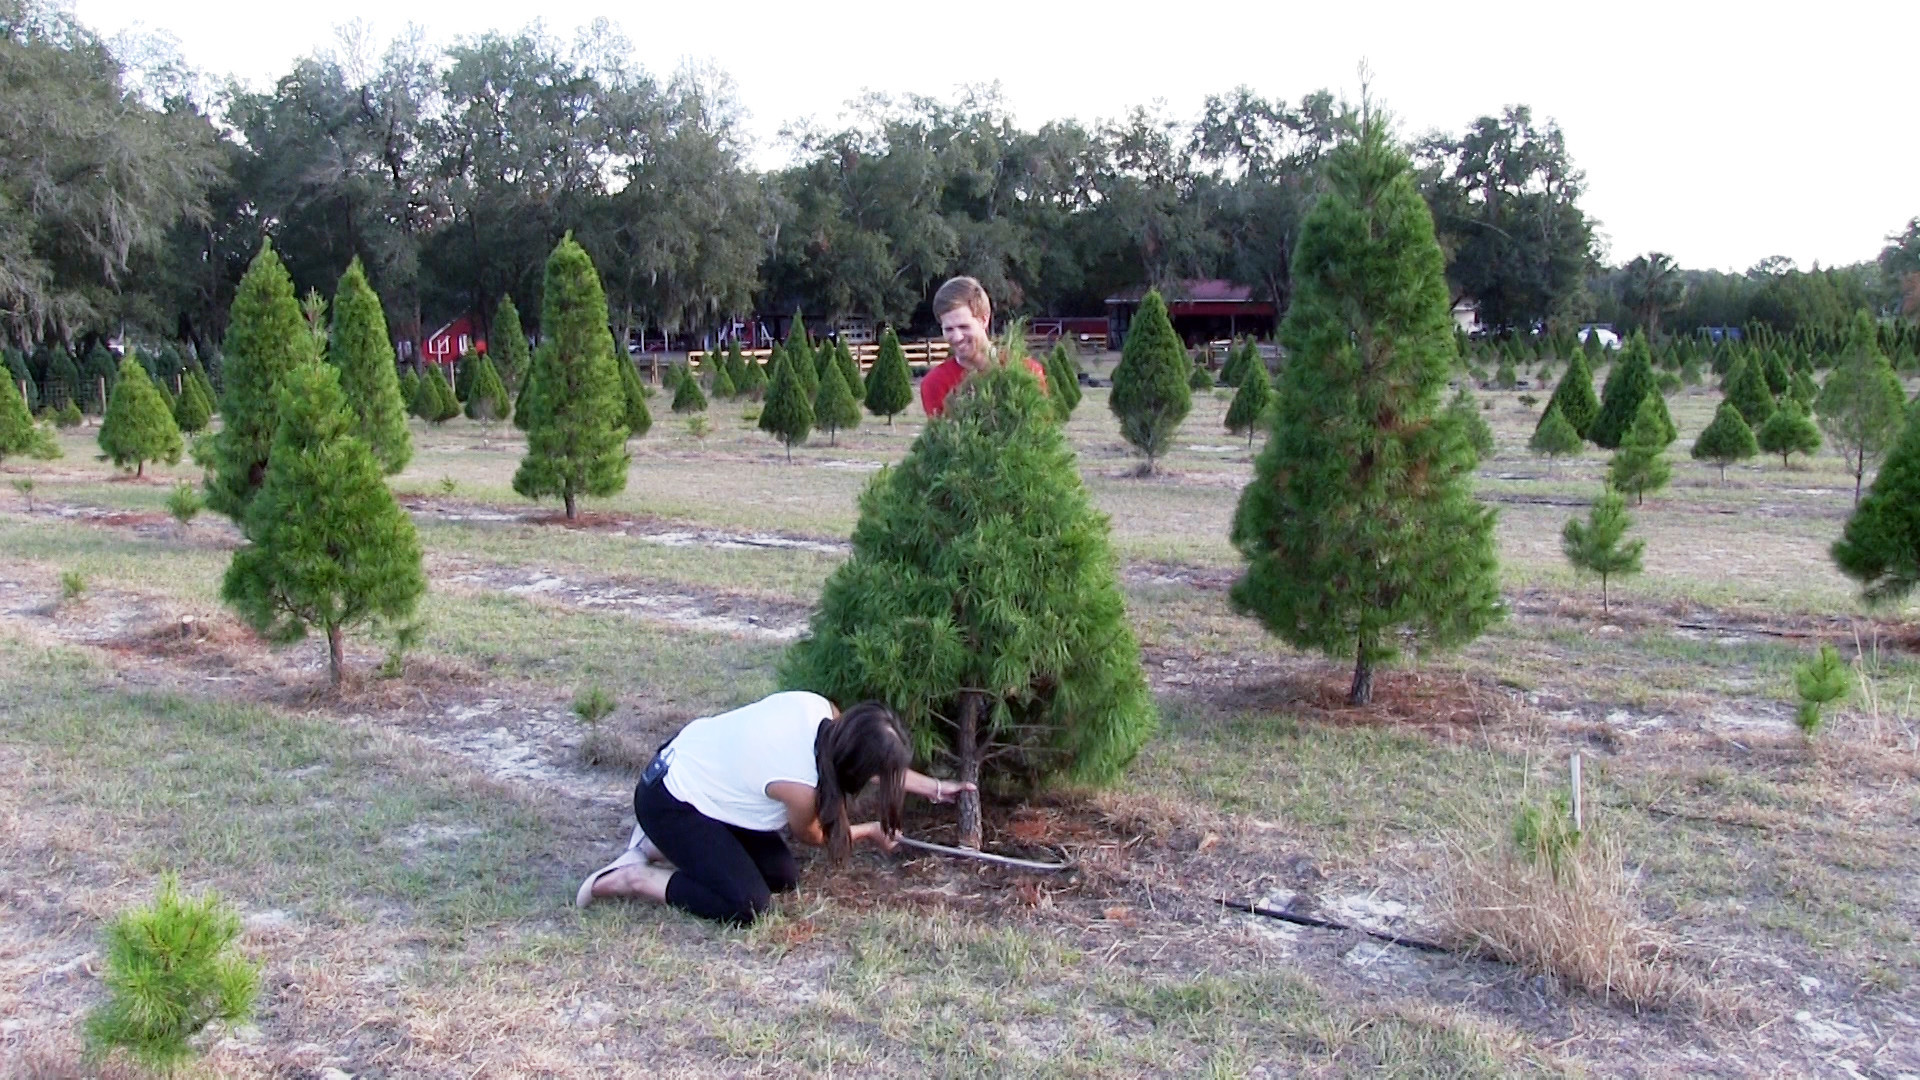 Where You Can Cut Down Your Own Christmas Tree